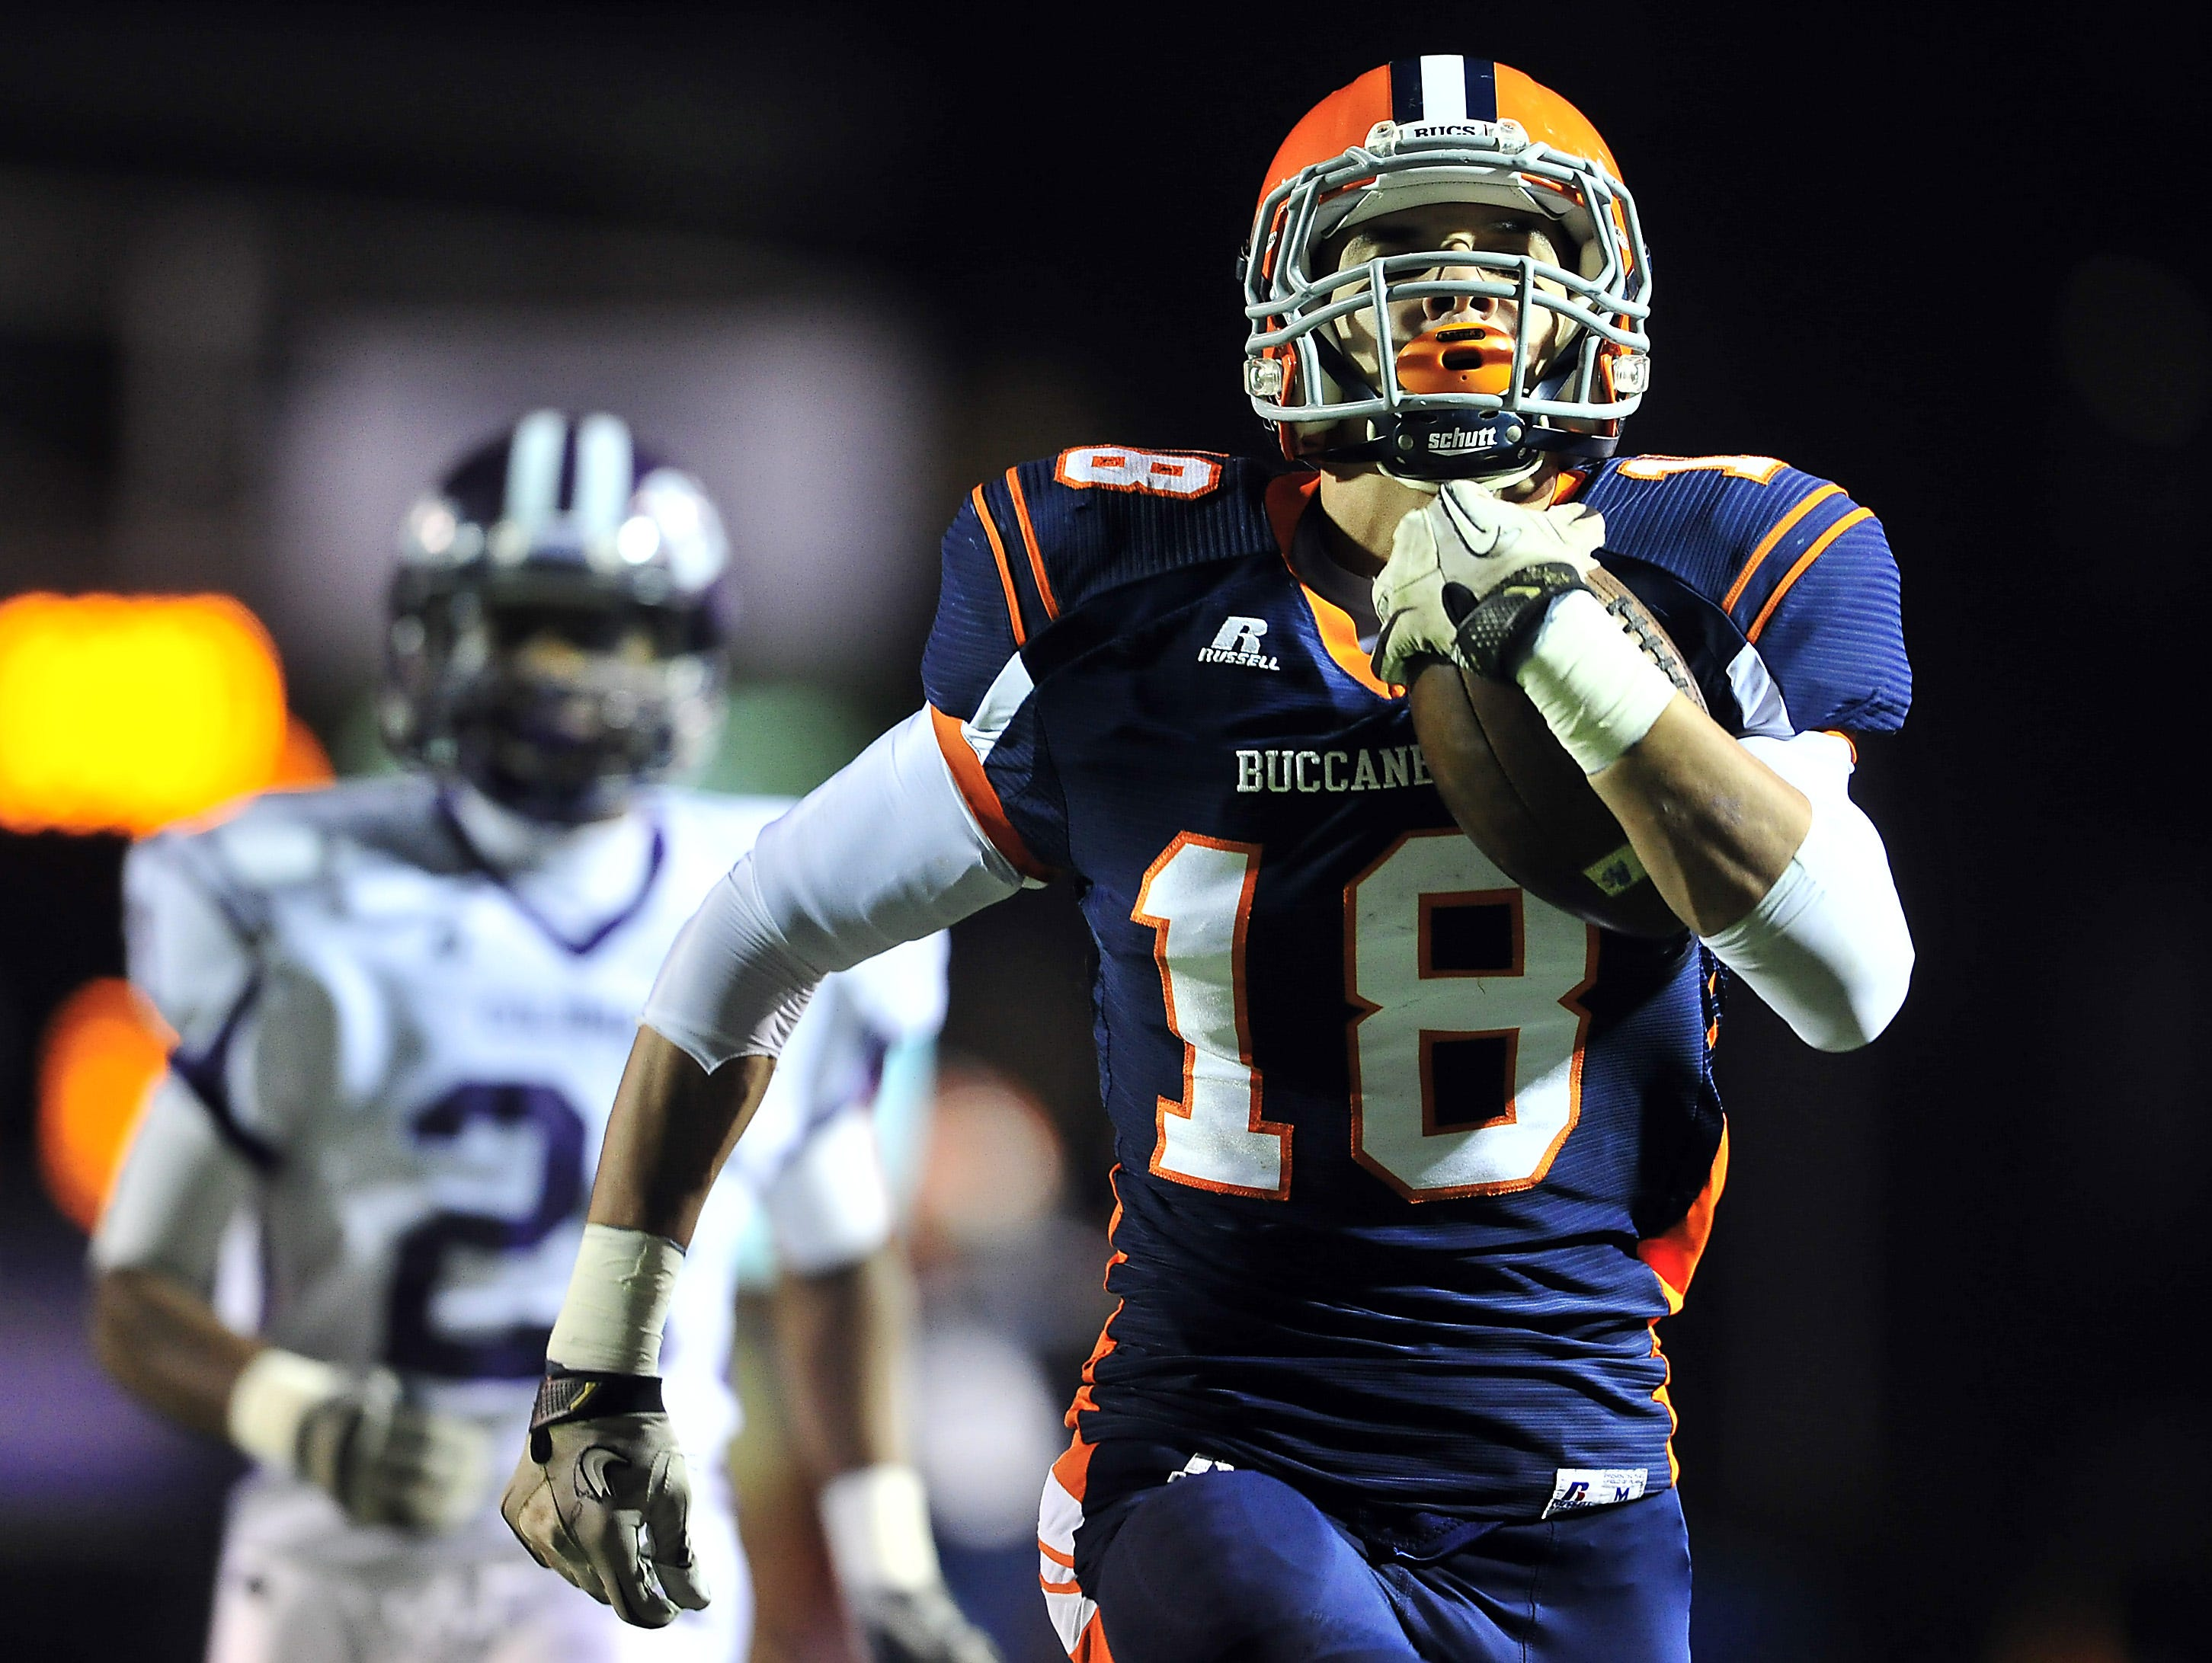 Former Beech standout and current University of Tennessee sophomore Jalen Hurd.